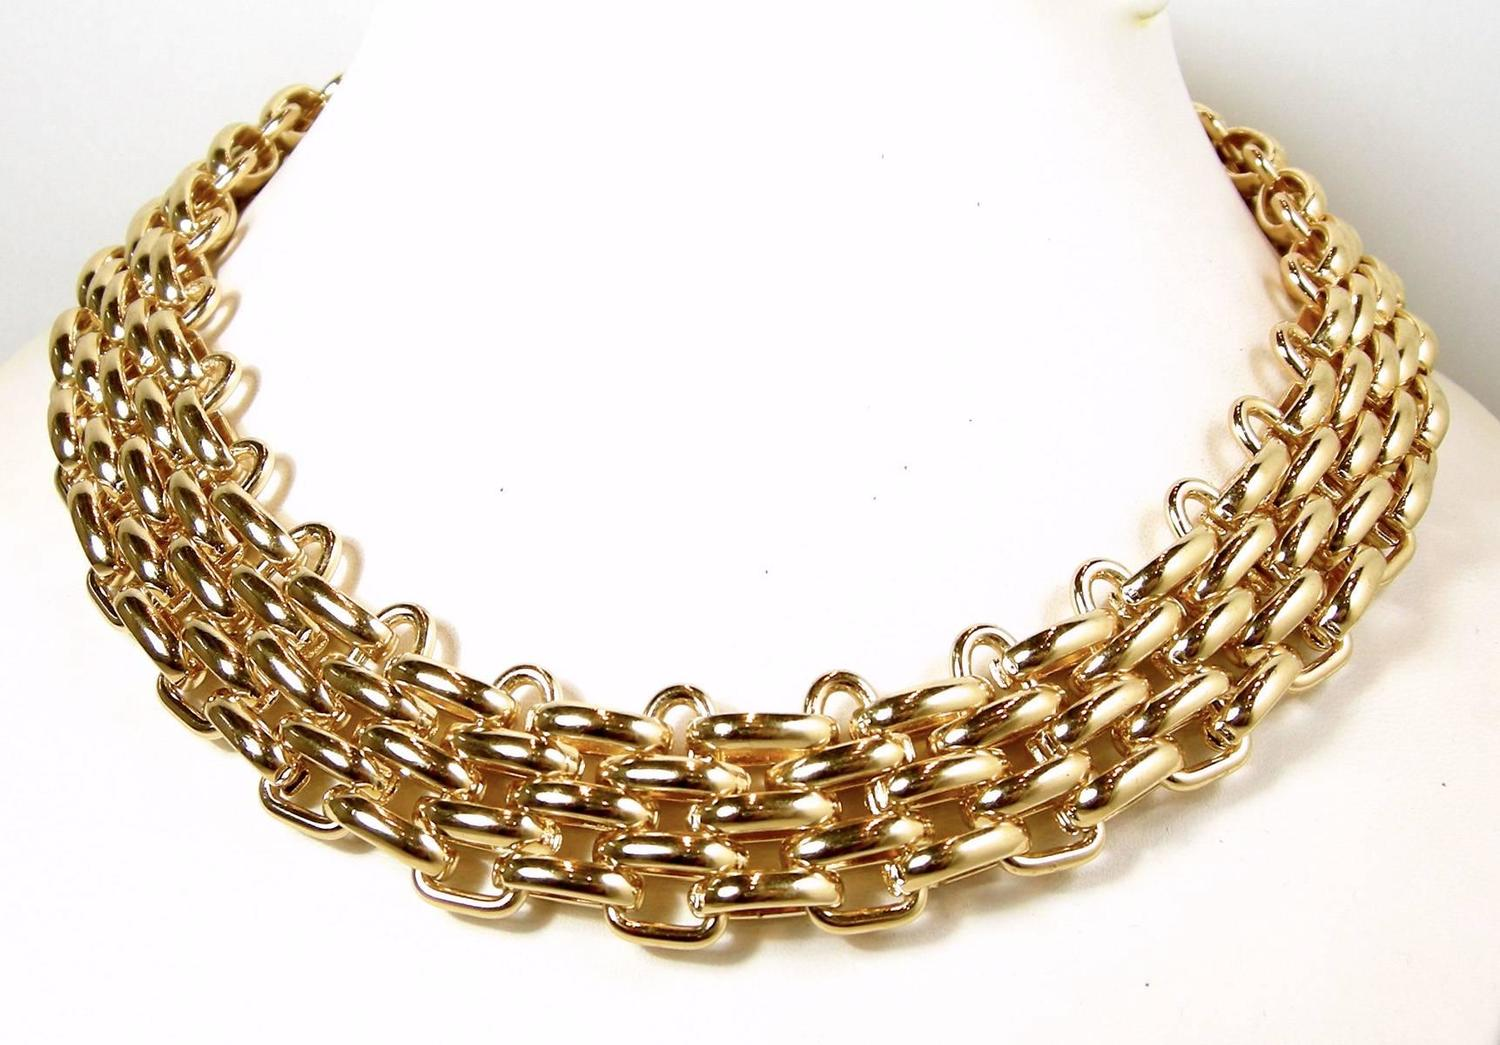 Vintage 1960s Christian Dior Germany Gold Plated Necklace ...